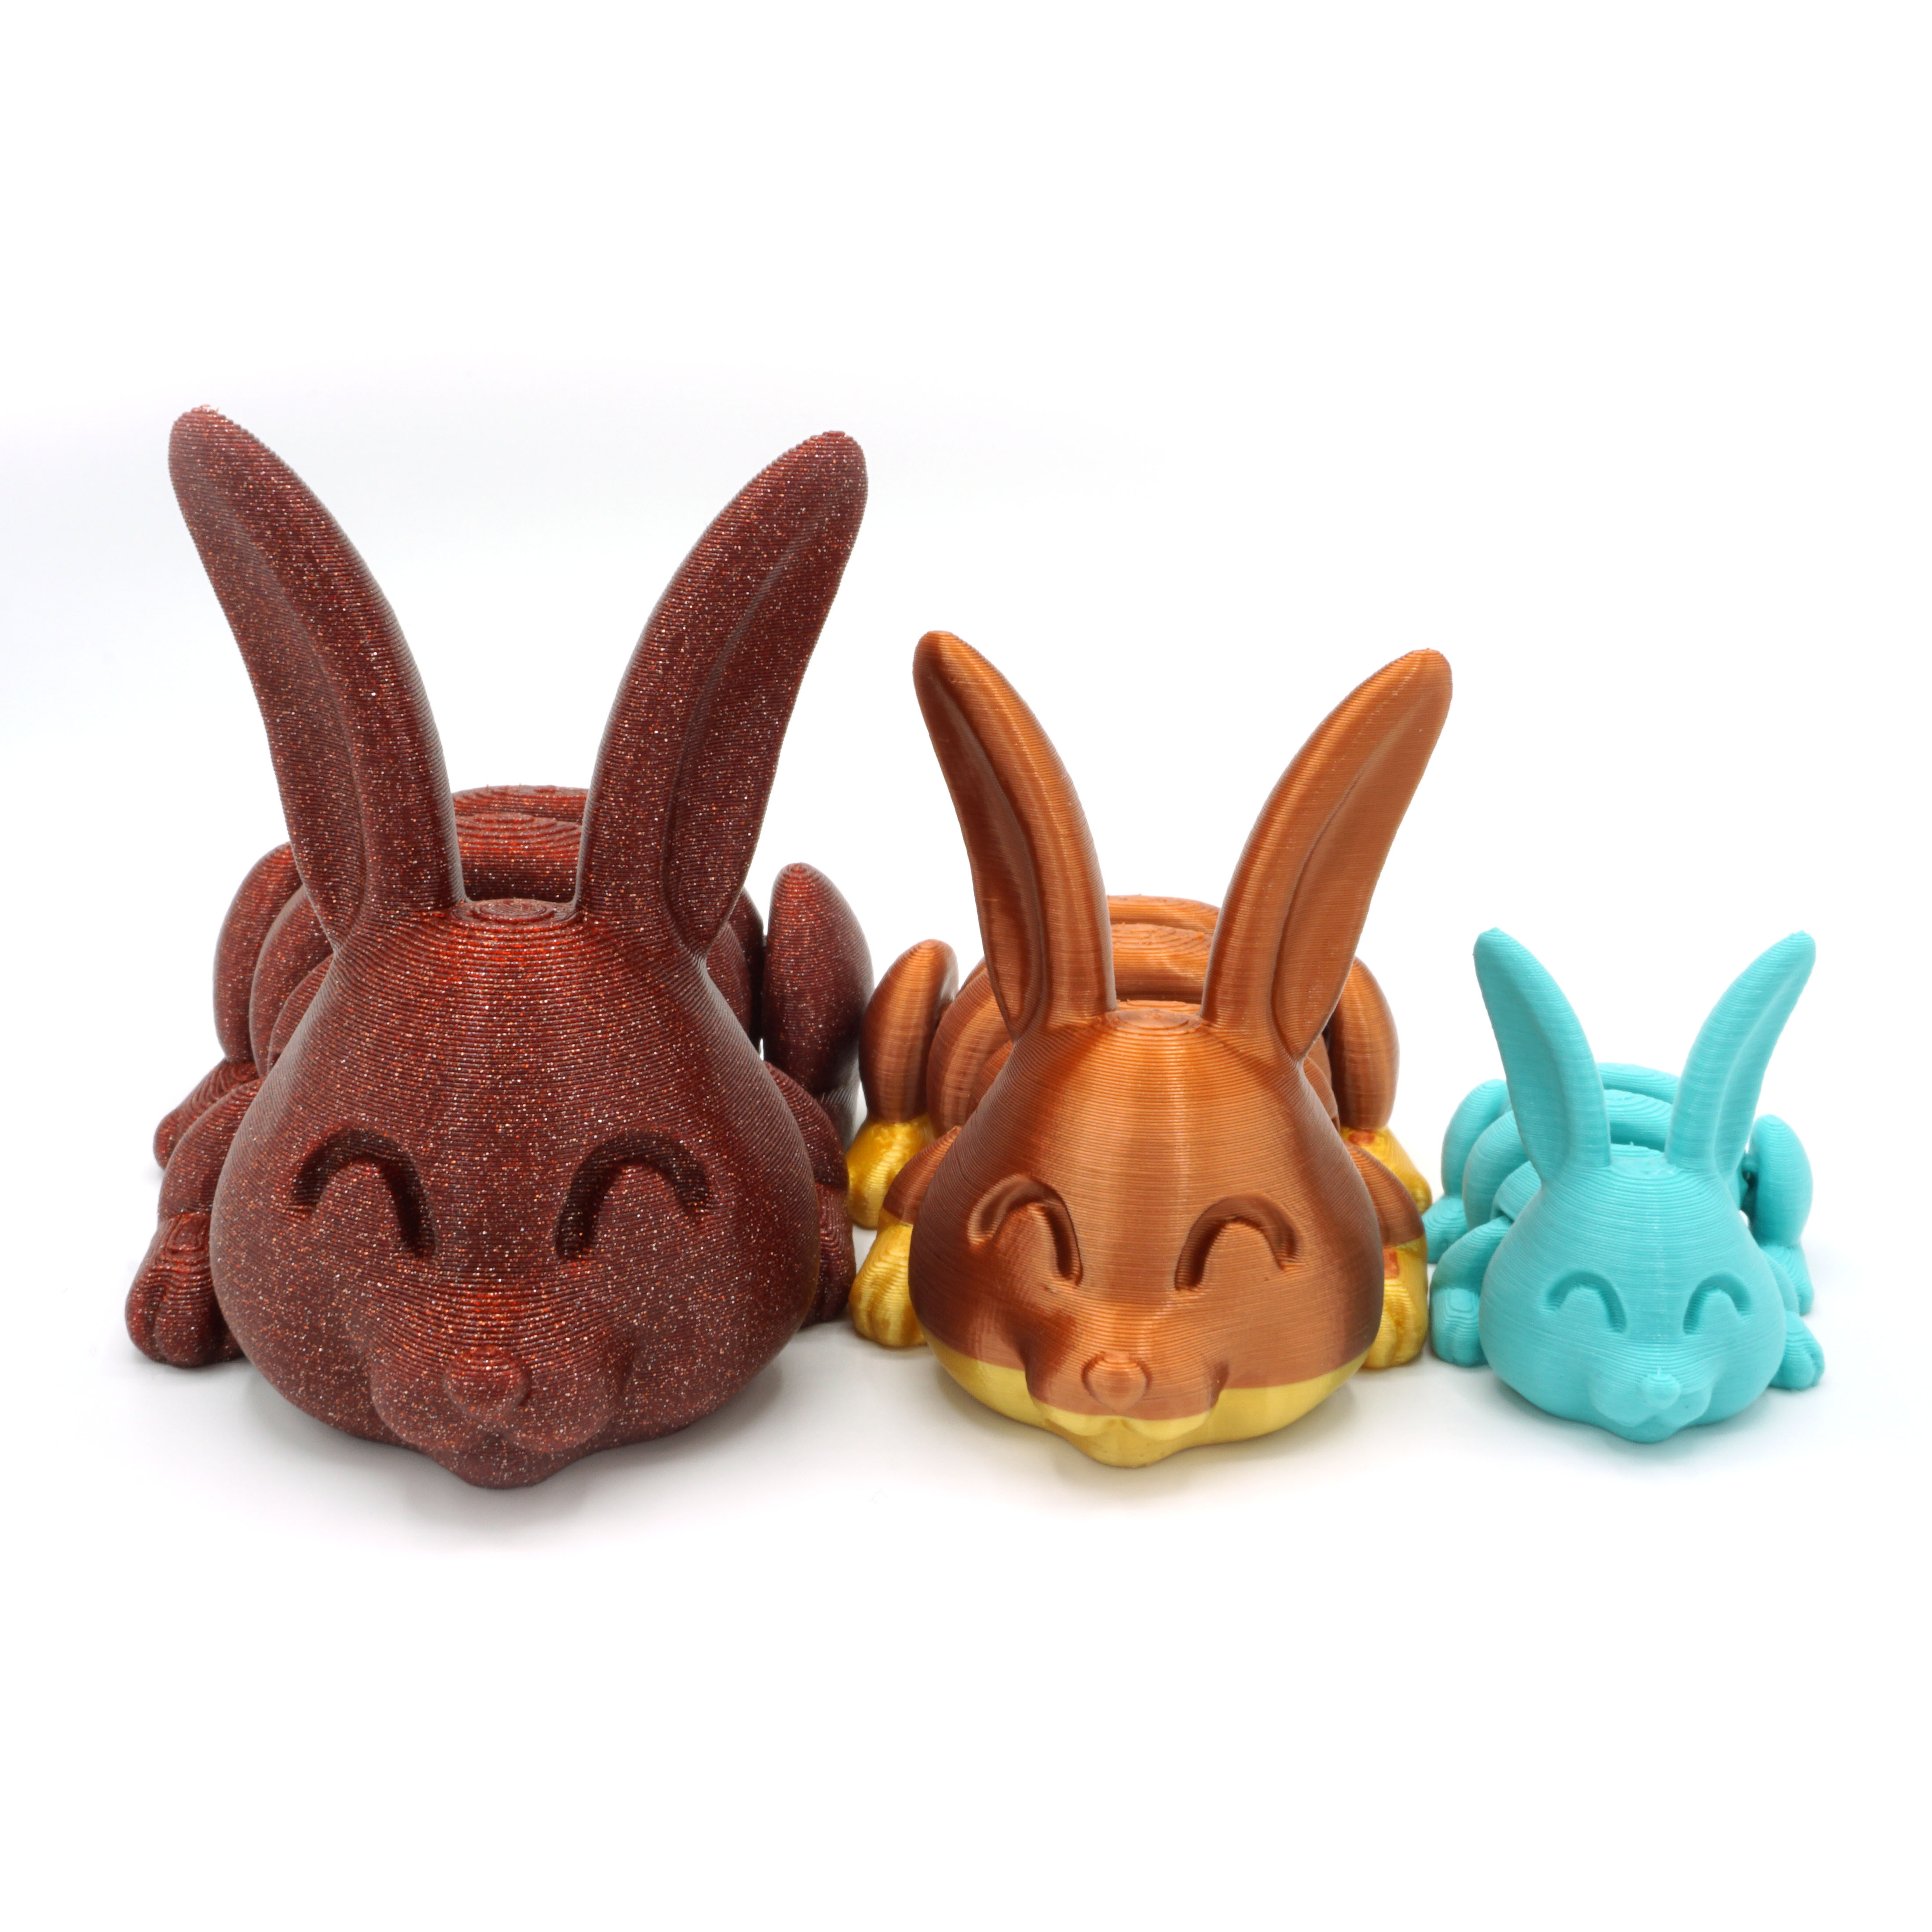 DSC01352 copia.jpg Download STL file Articulated Bunny • Template to 3D print, mcgybeer